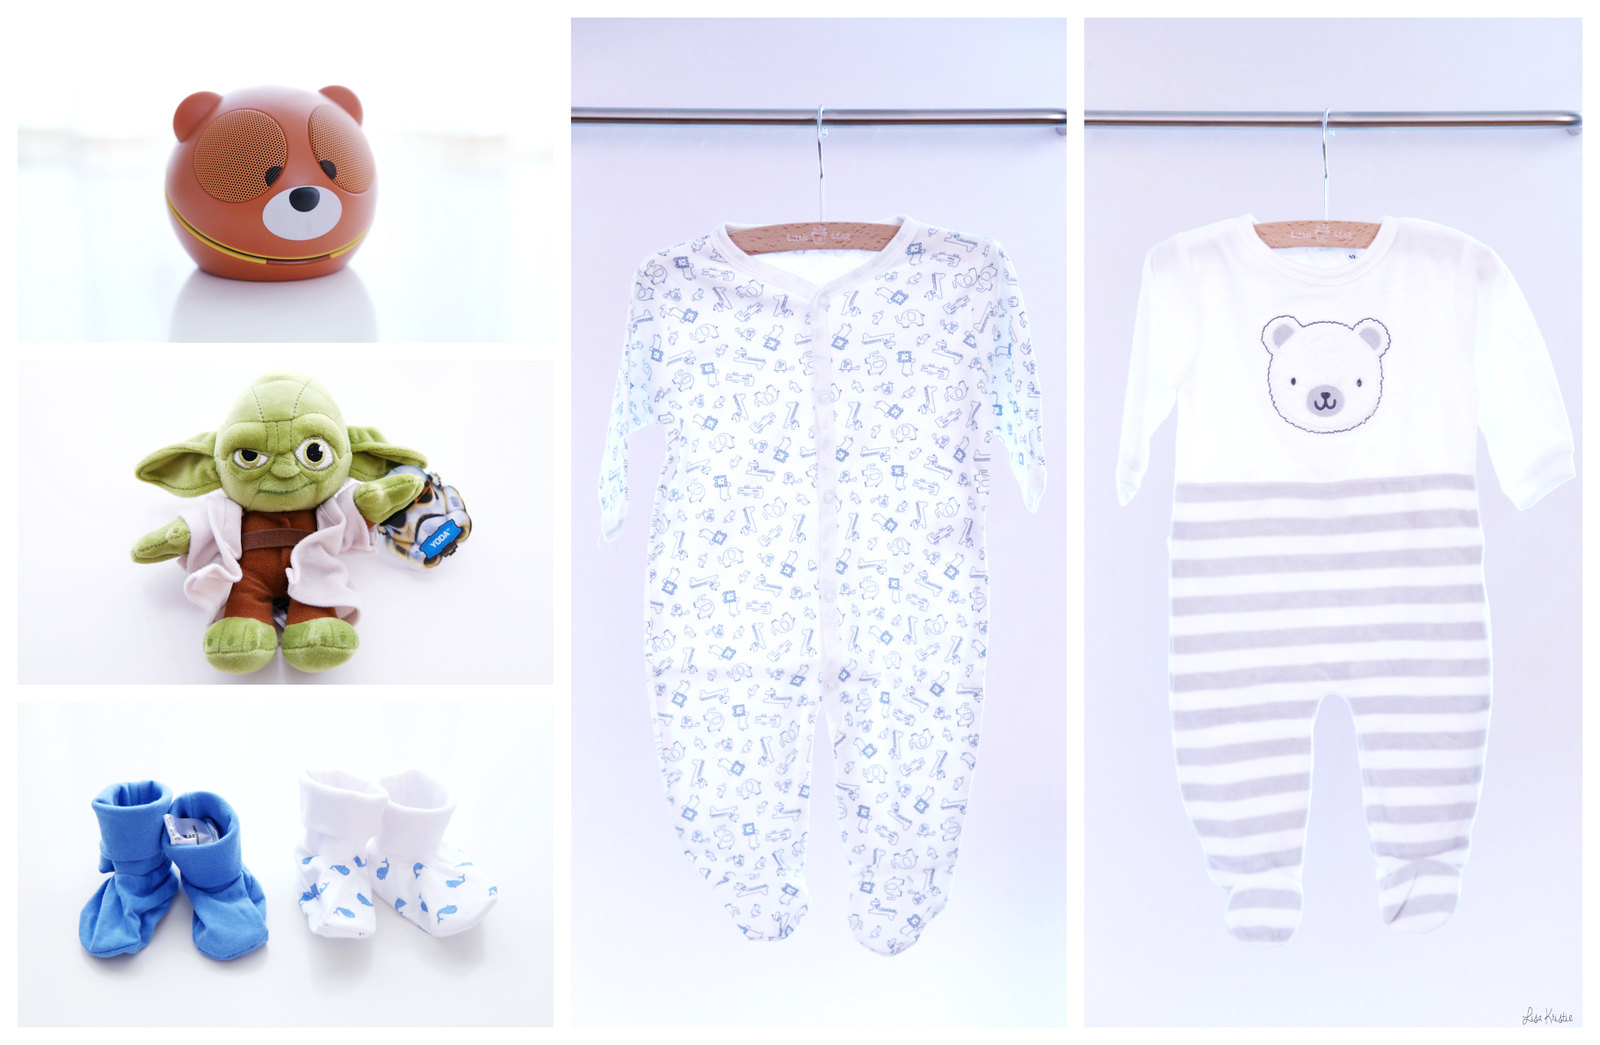 baby shopping pregnancy expecting newborn clothes onesies pajamas yoda star wars stuffed animal plush toy disney official teddy bear speakers zookeeper speaker bear bart smit zeeman 2016 socks cotton blue pale gender neutral boy haul